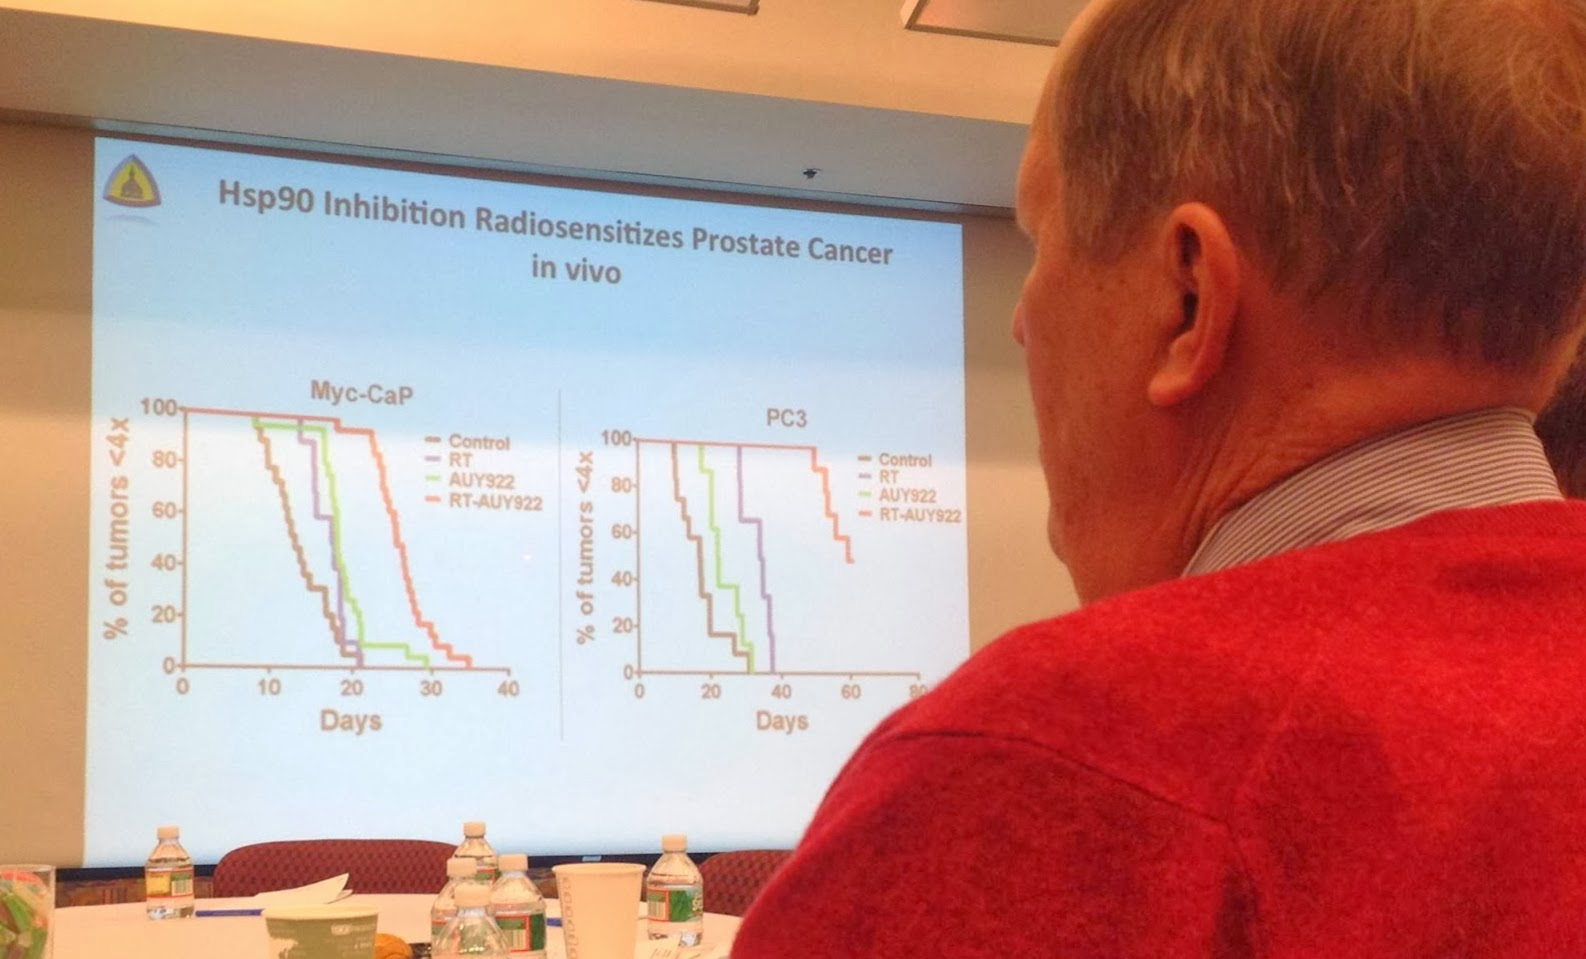 brady urology at johns hopkins hospital 2014 based on available preclinical data dr tran theorizes that hsp90 inhibition will be a potent tumor specific radiosensitizer for prostate cancer and